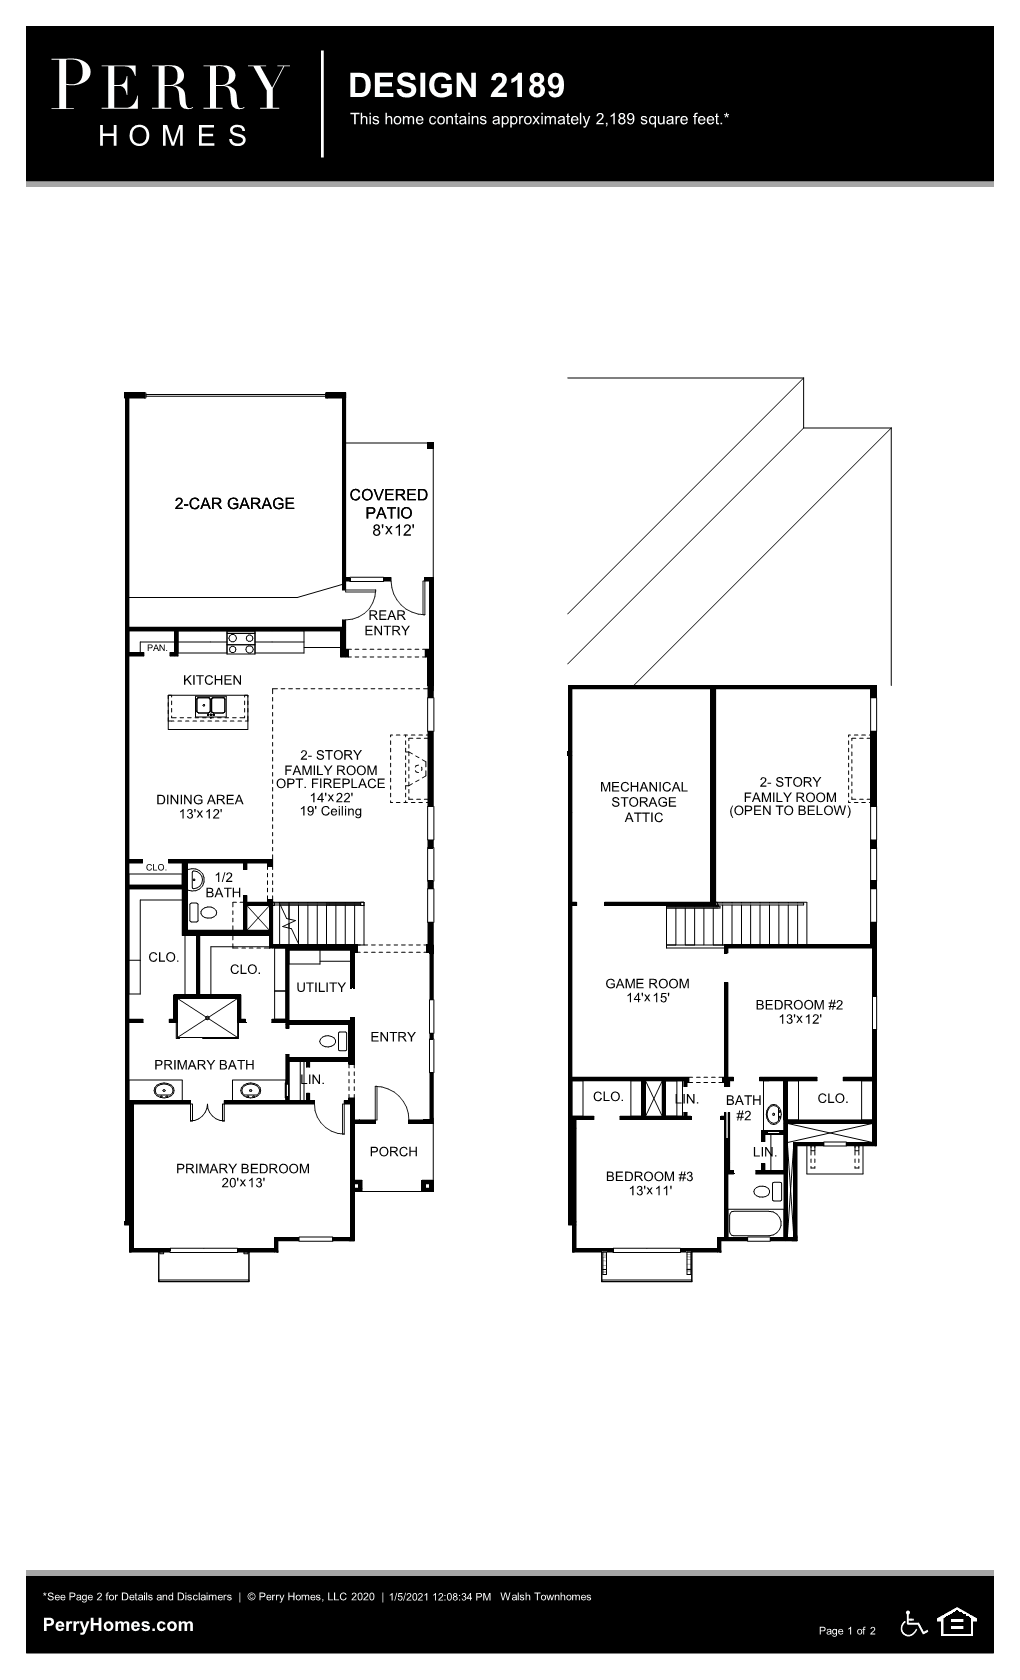 Available To Build In Walsh Townhomes